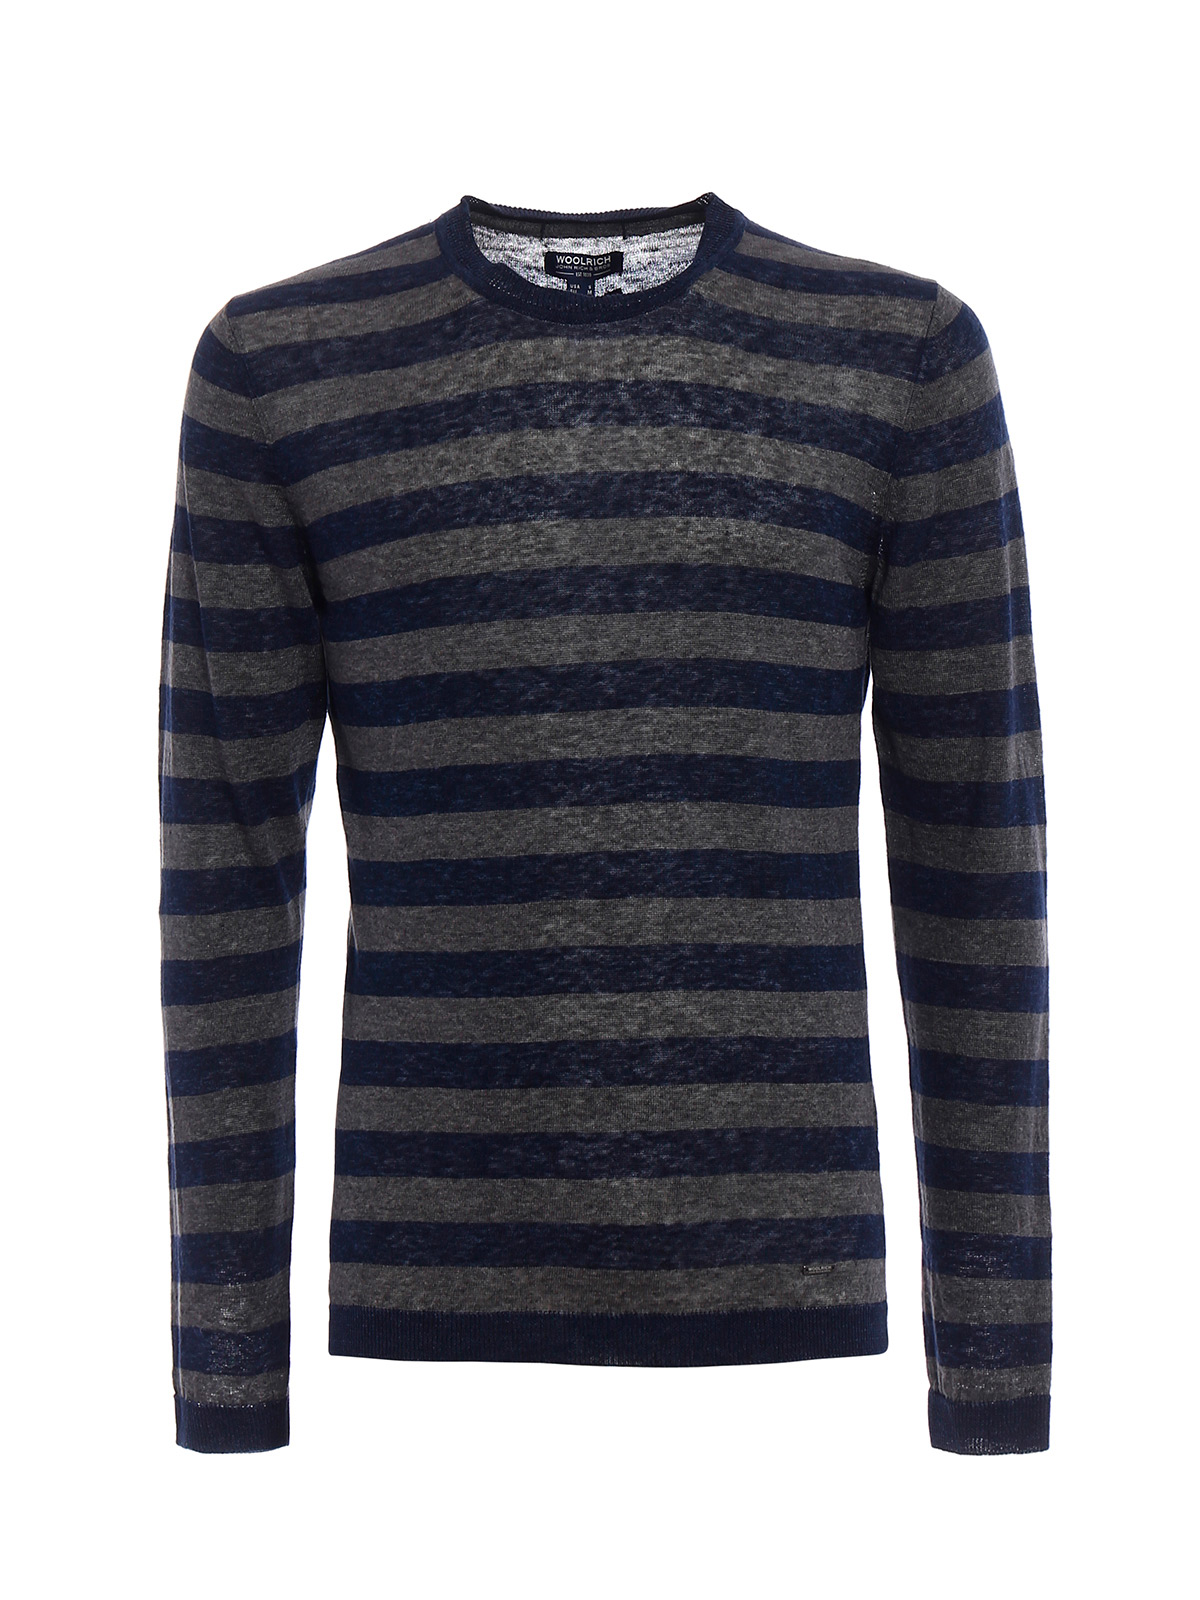 Picture of WOOLRICH | Men's Linen Striped Sweater